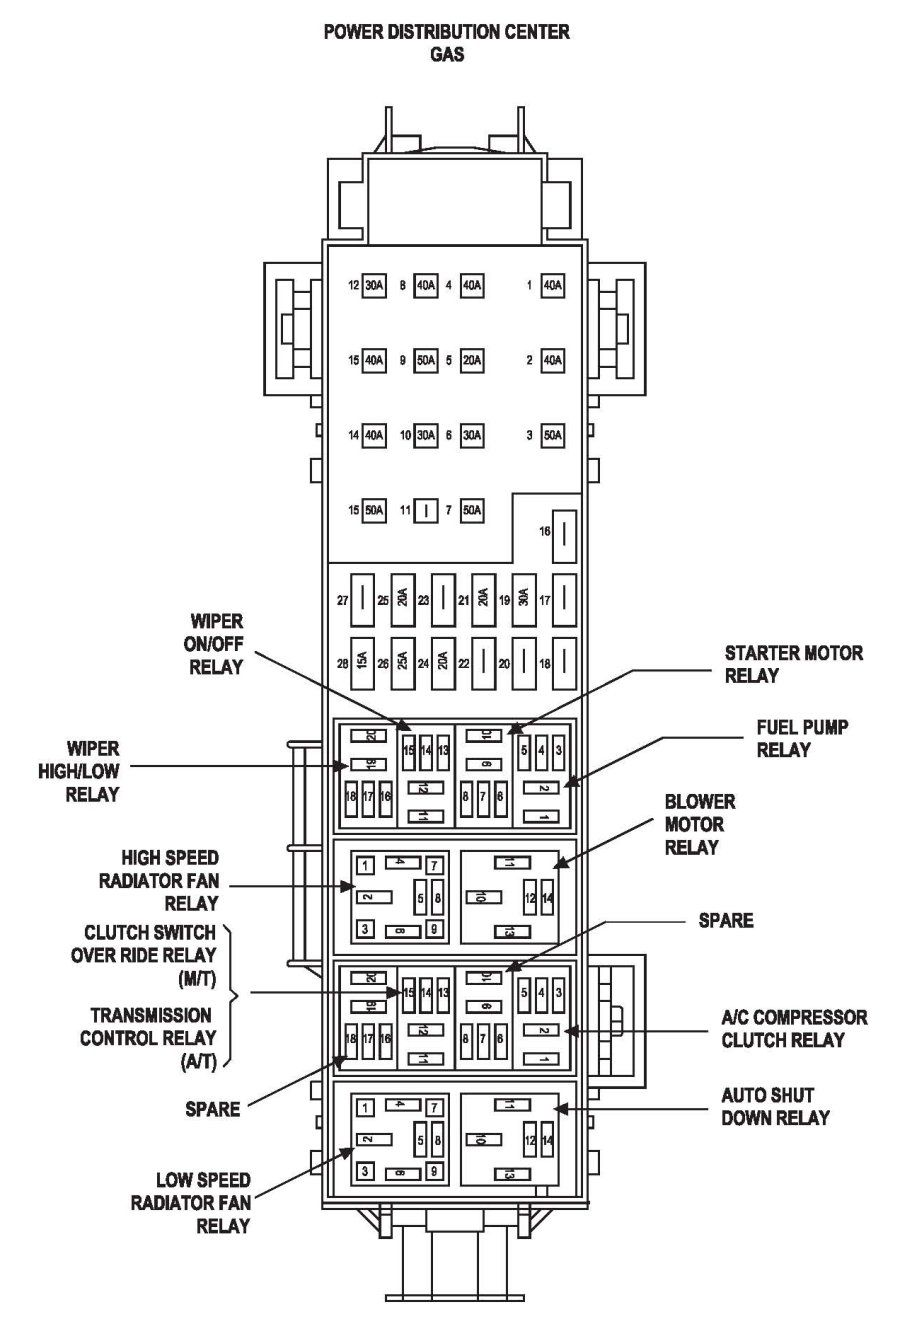 b3536c3739783eb19f827744cc42c3c4 jeep liberty fuse box diagram image details jeep liberty jeep liberty fuse box diagram at bayanpartner.co